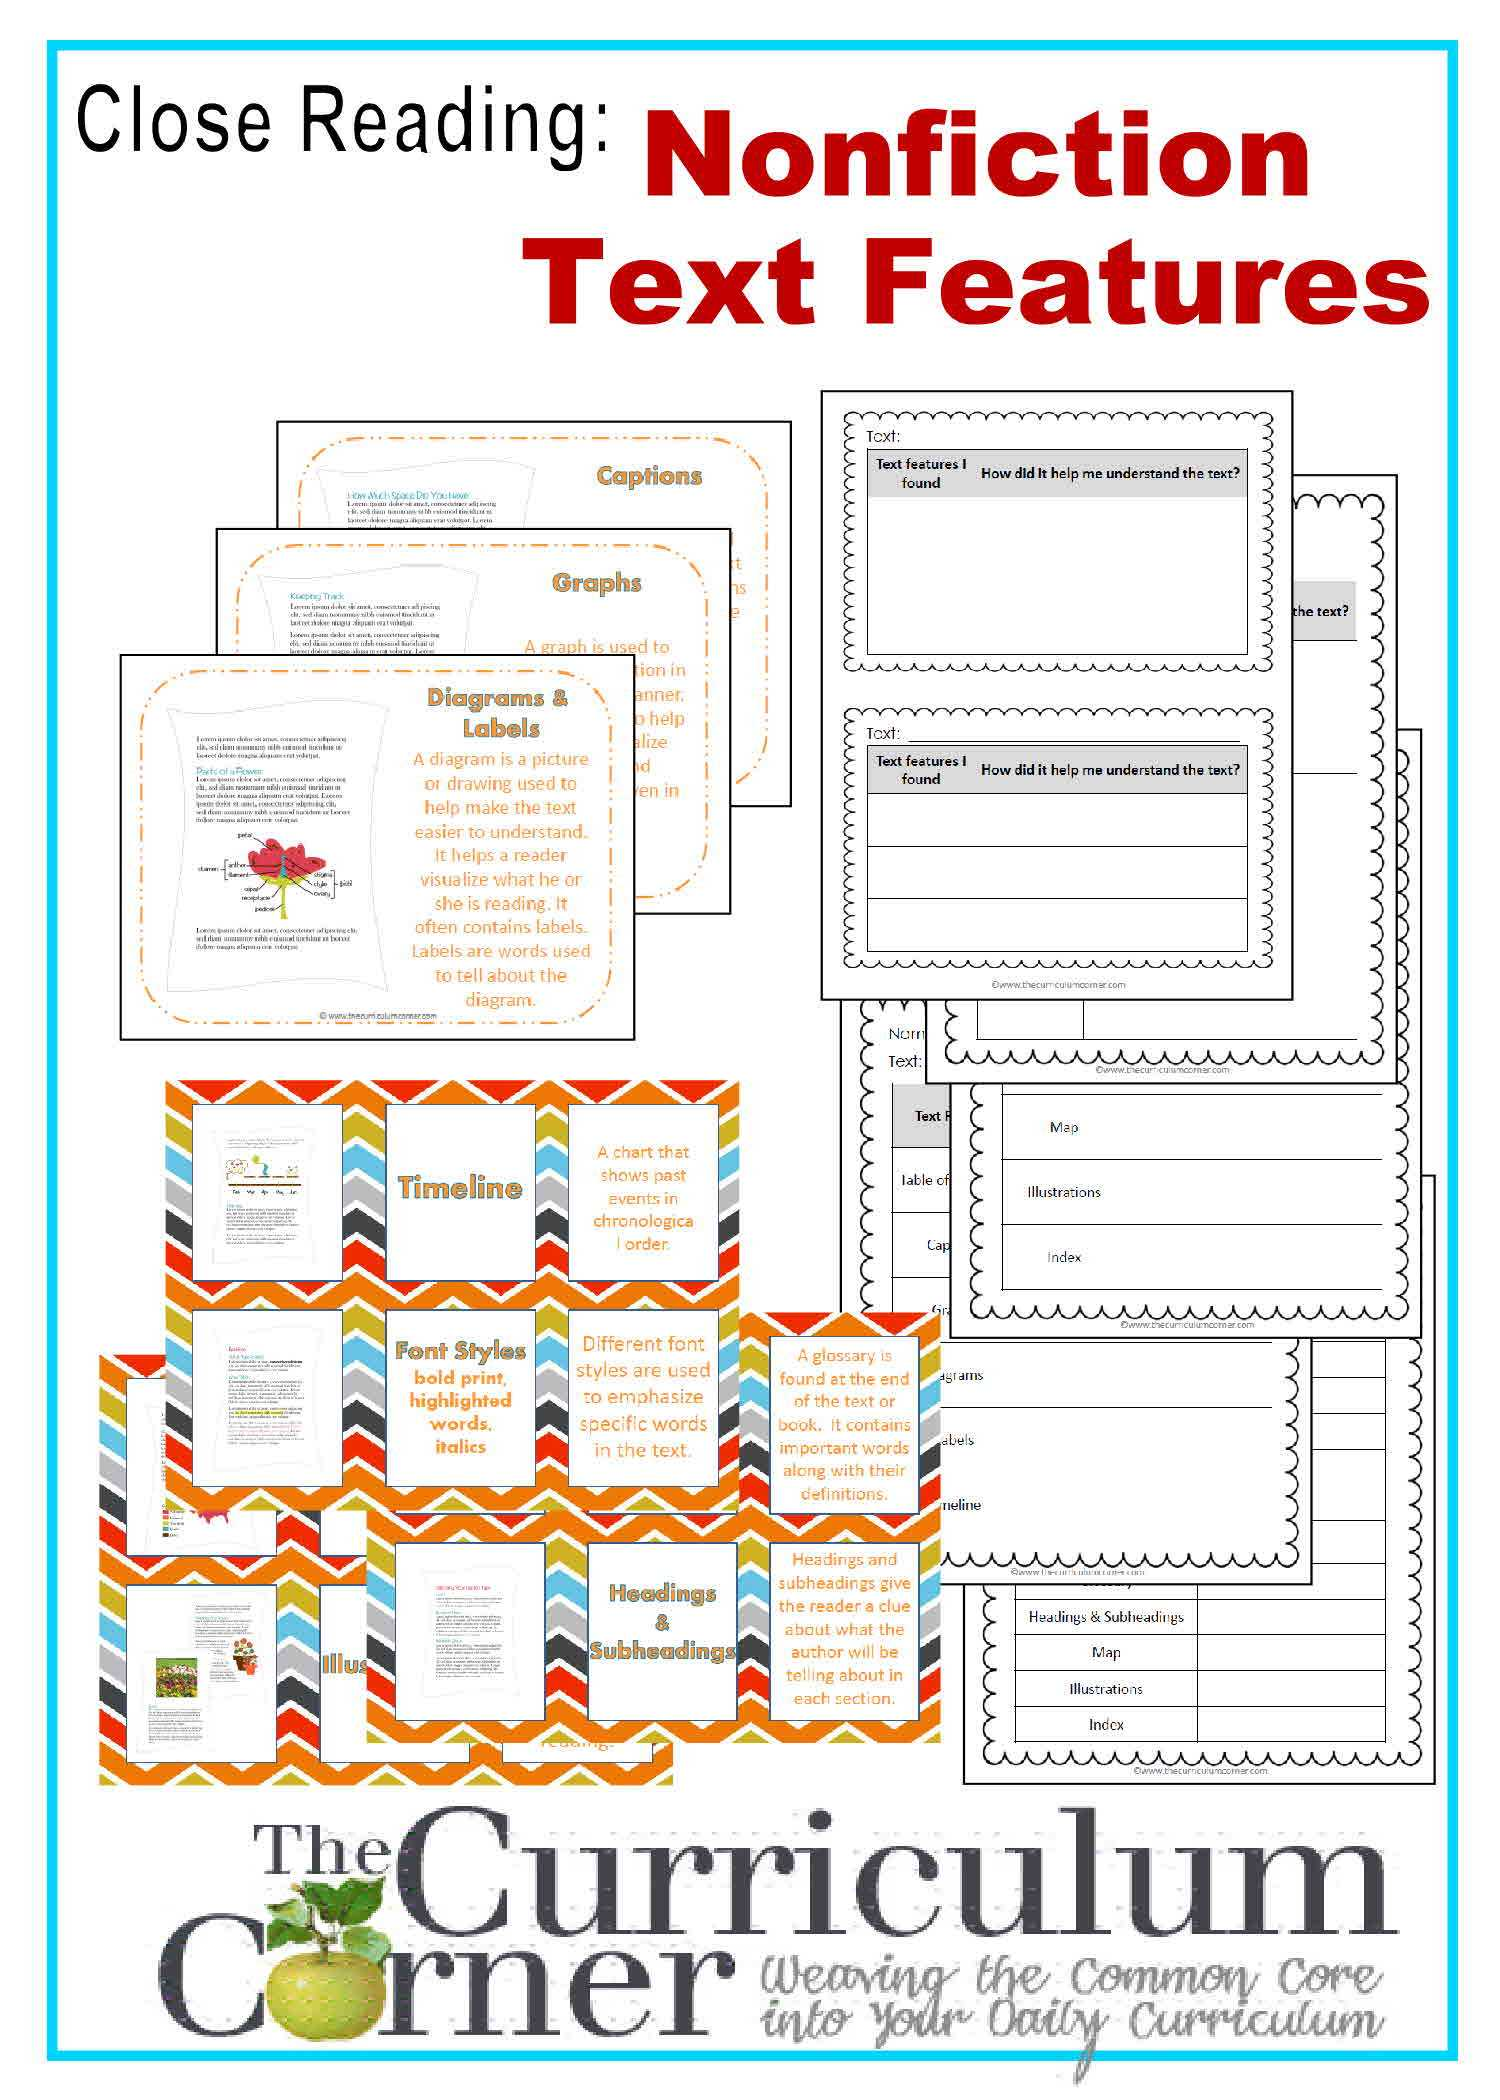 Nonfiction Text Features Worksheet Along with Nonfiction Features Worksheet